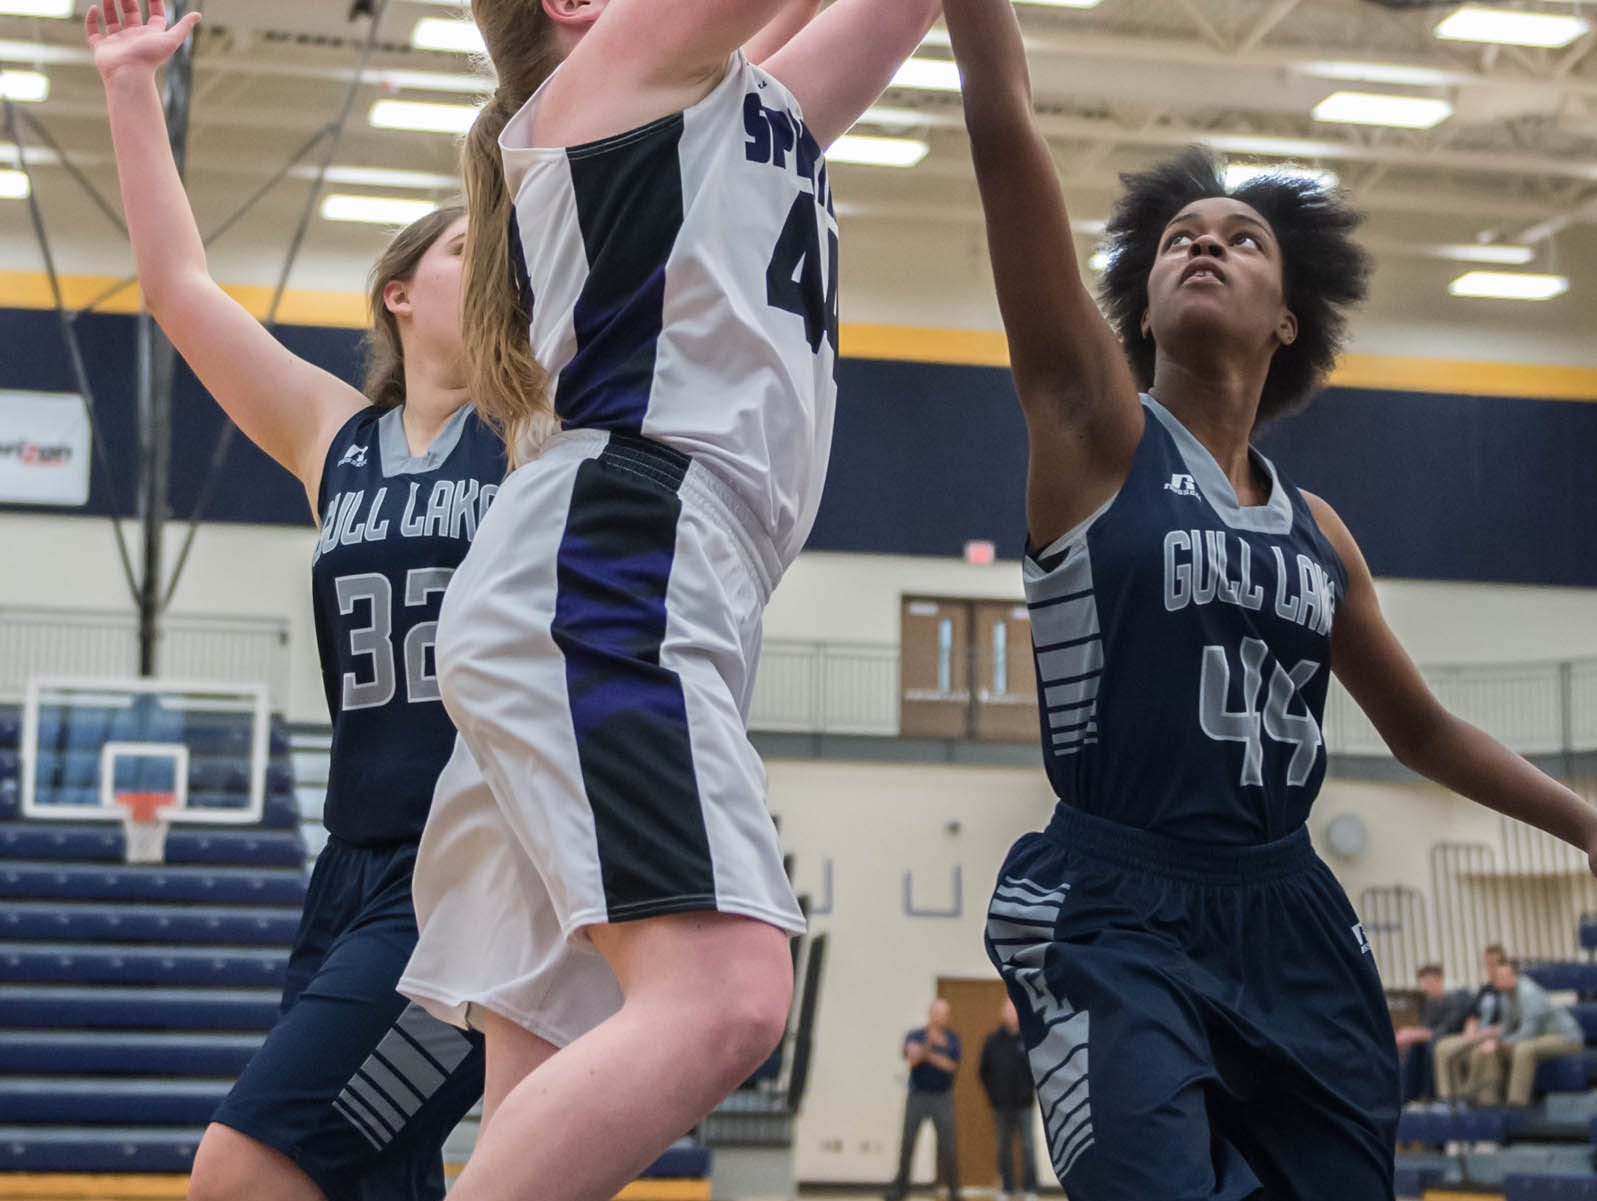 Lakeview's Emily Eldridge (44) goes for the hoop while being guarded by Gull Lake's Imani Morrow (44) Wednesday evening.